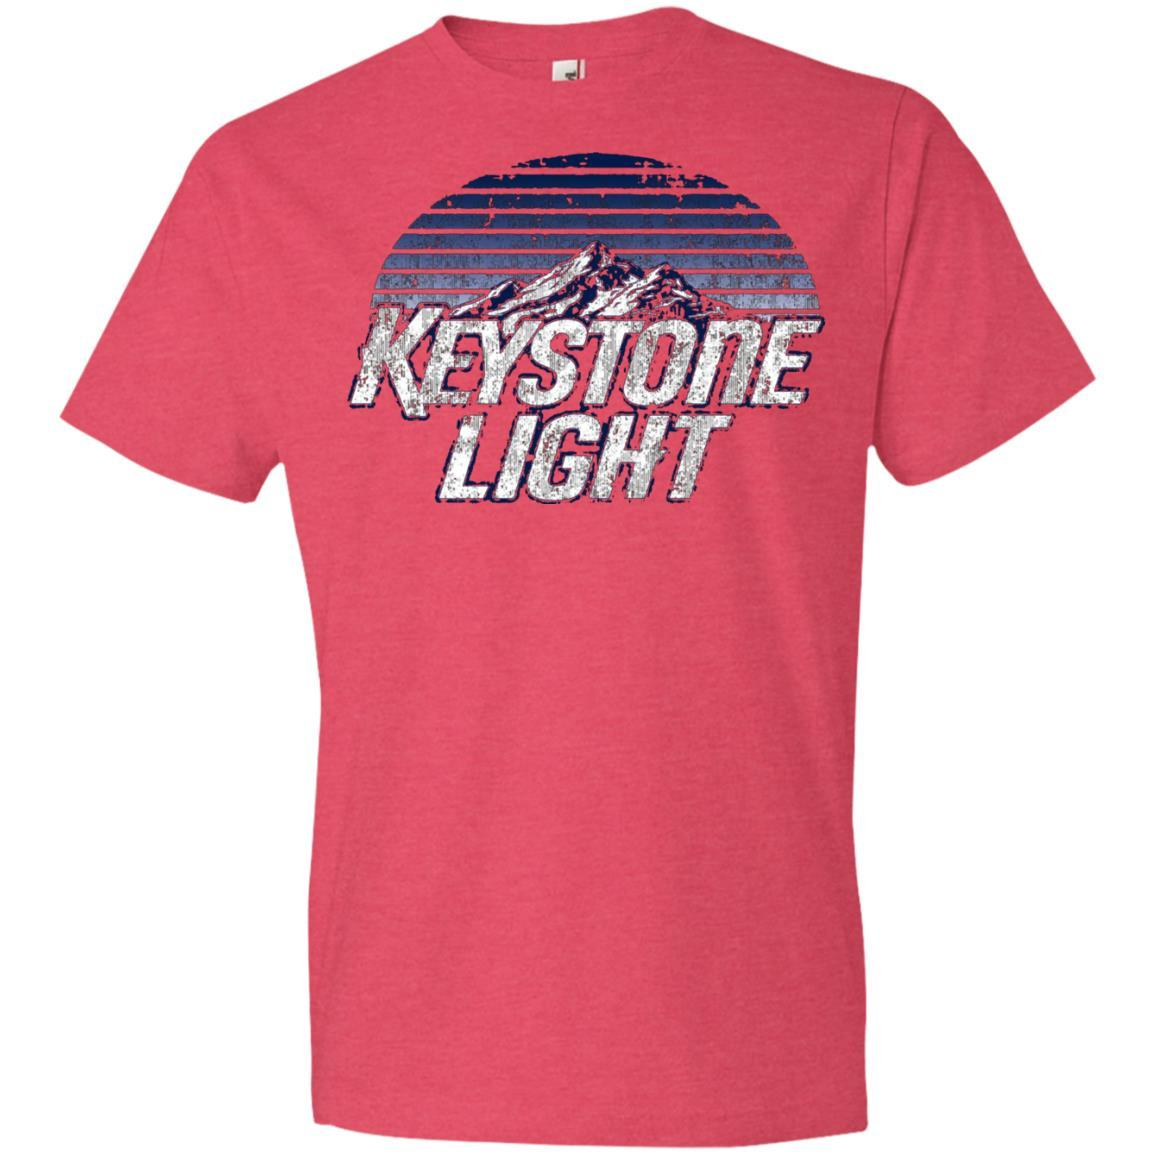 Keystone Light Beer Classic Look - Anvil Lightweight T-Shirt Heather Red / 3XL